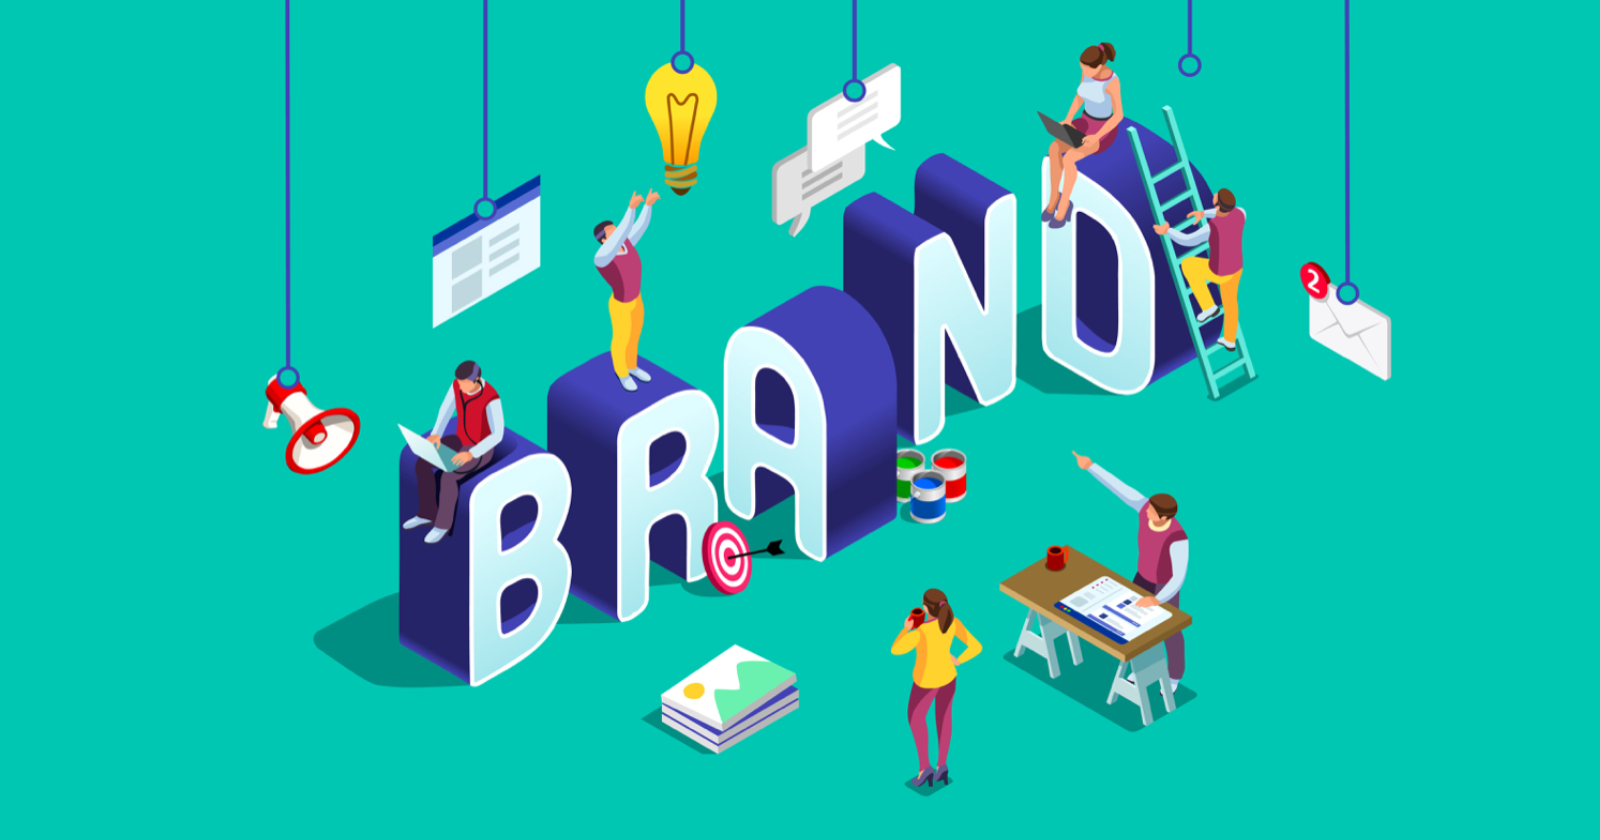 How to Do Corporate Branding Right